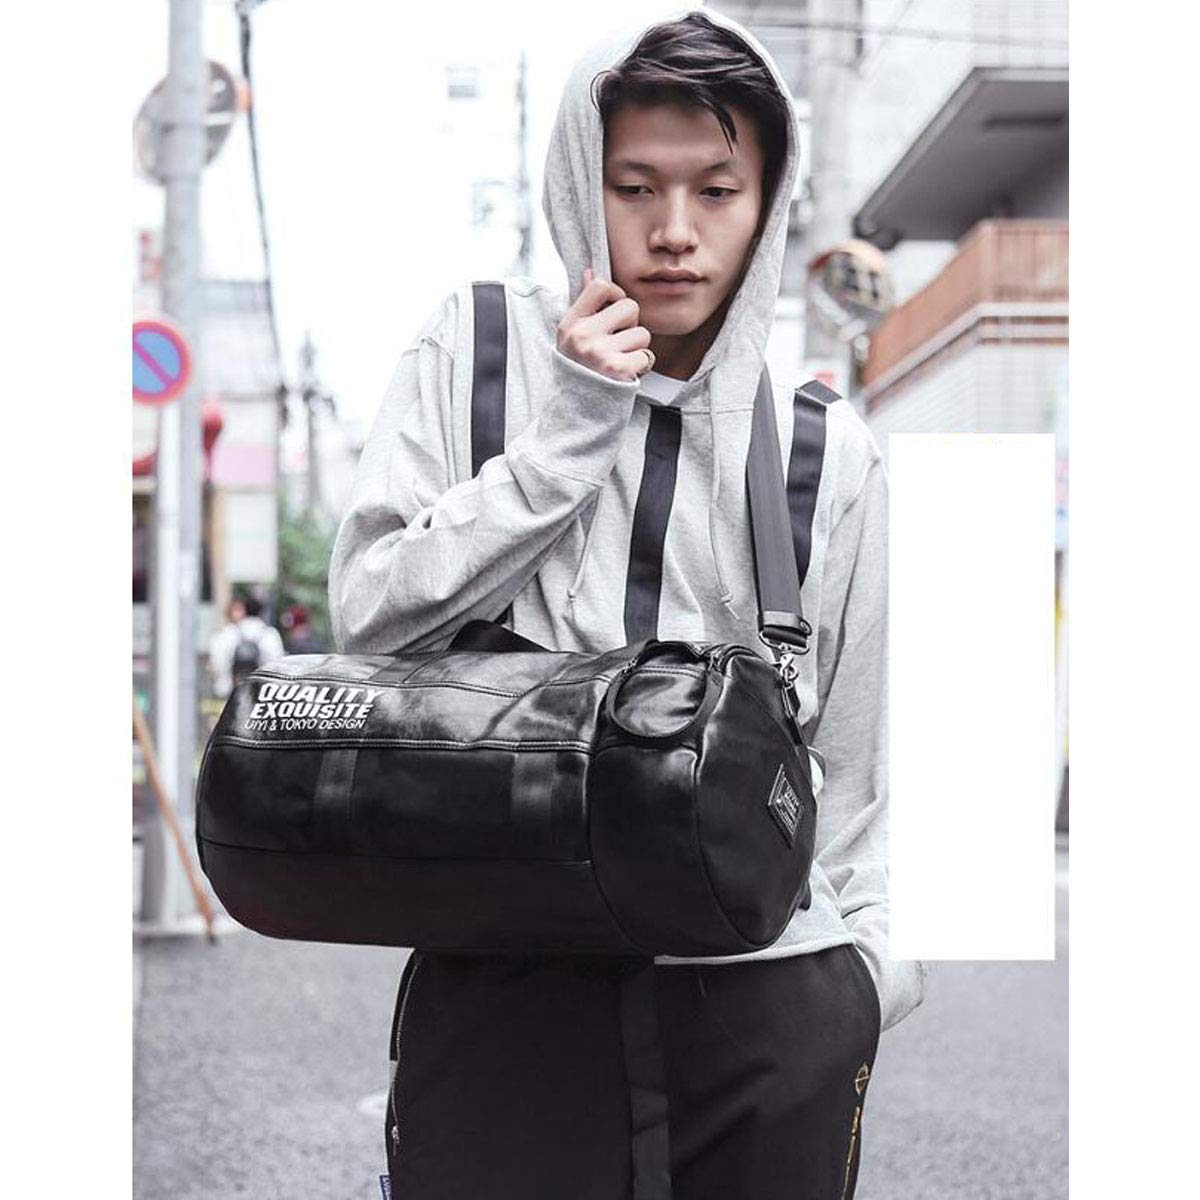 ZHICHUANG Fitness Bag Black Large Size: 462424cm Travel Duffel Bag for Men and Women Male Cylinder Travel Bag Travel Large Capacity Luggage Travel Bag